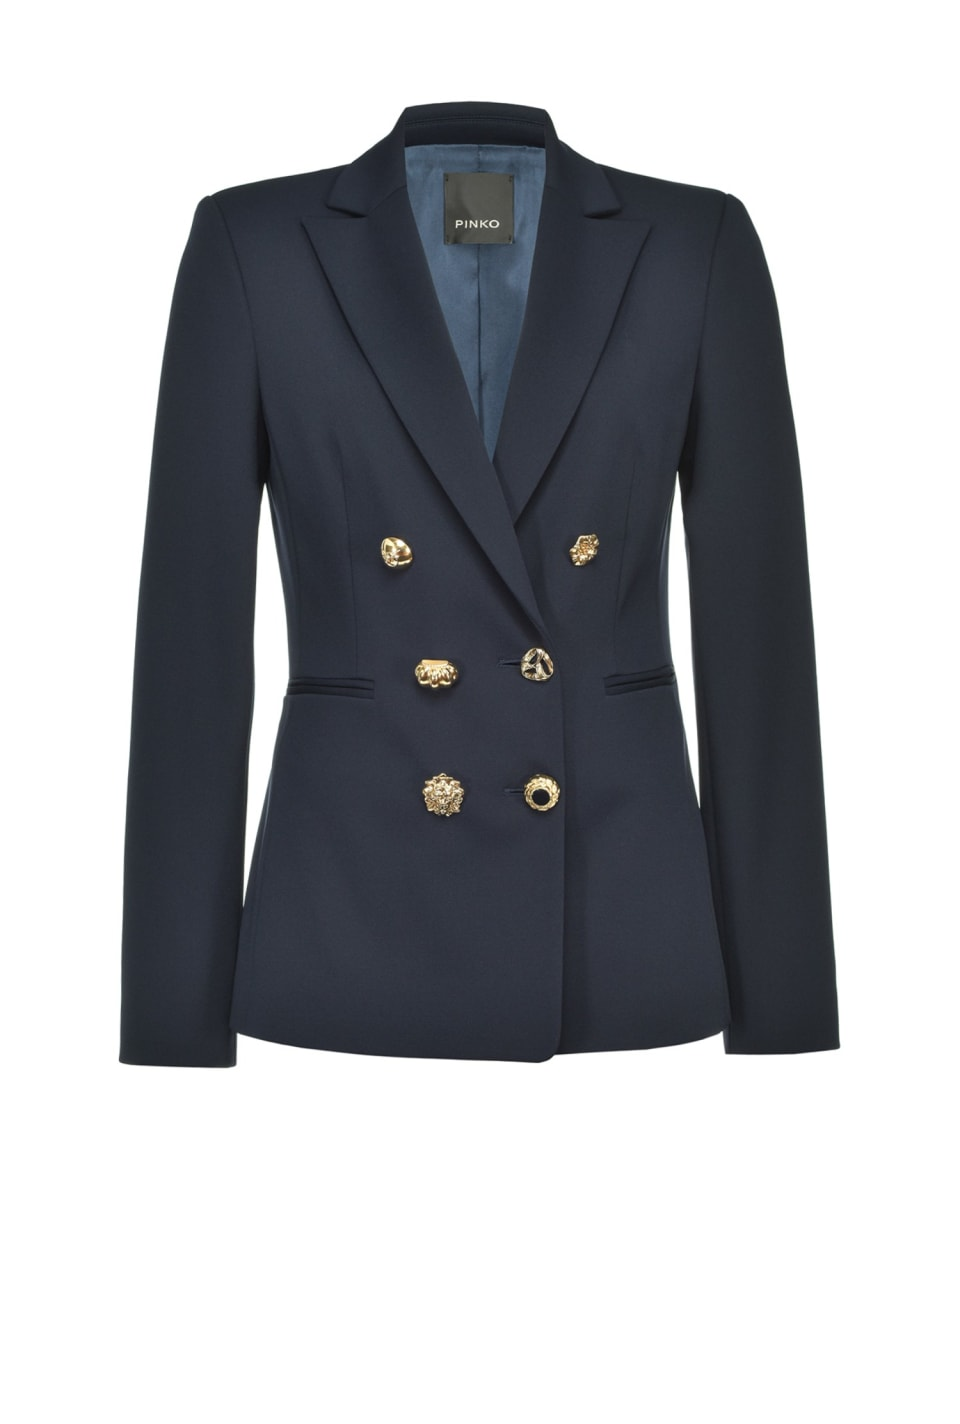 Sailor-style blazer with jewel buttons